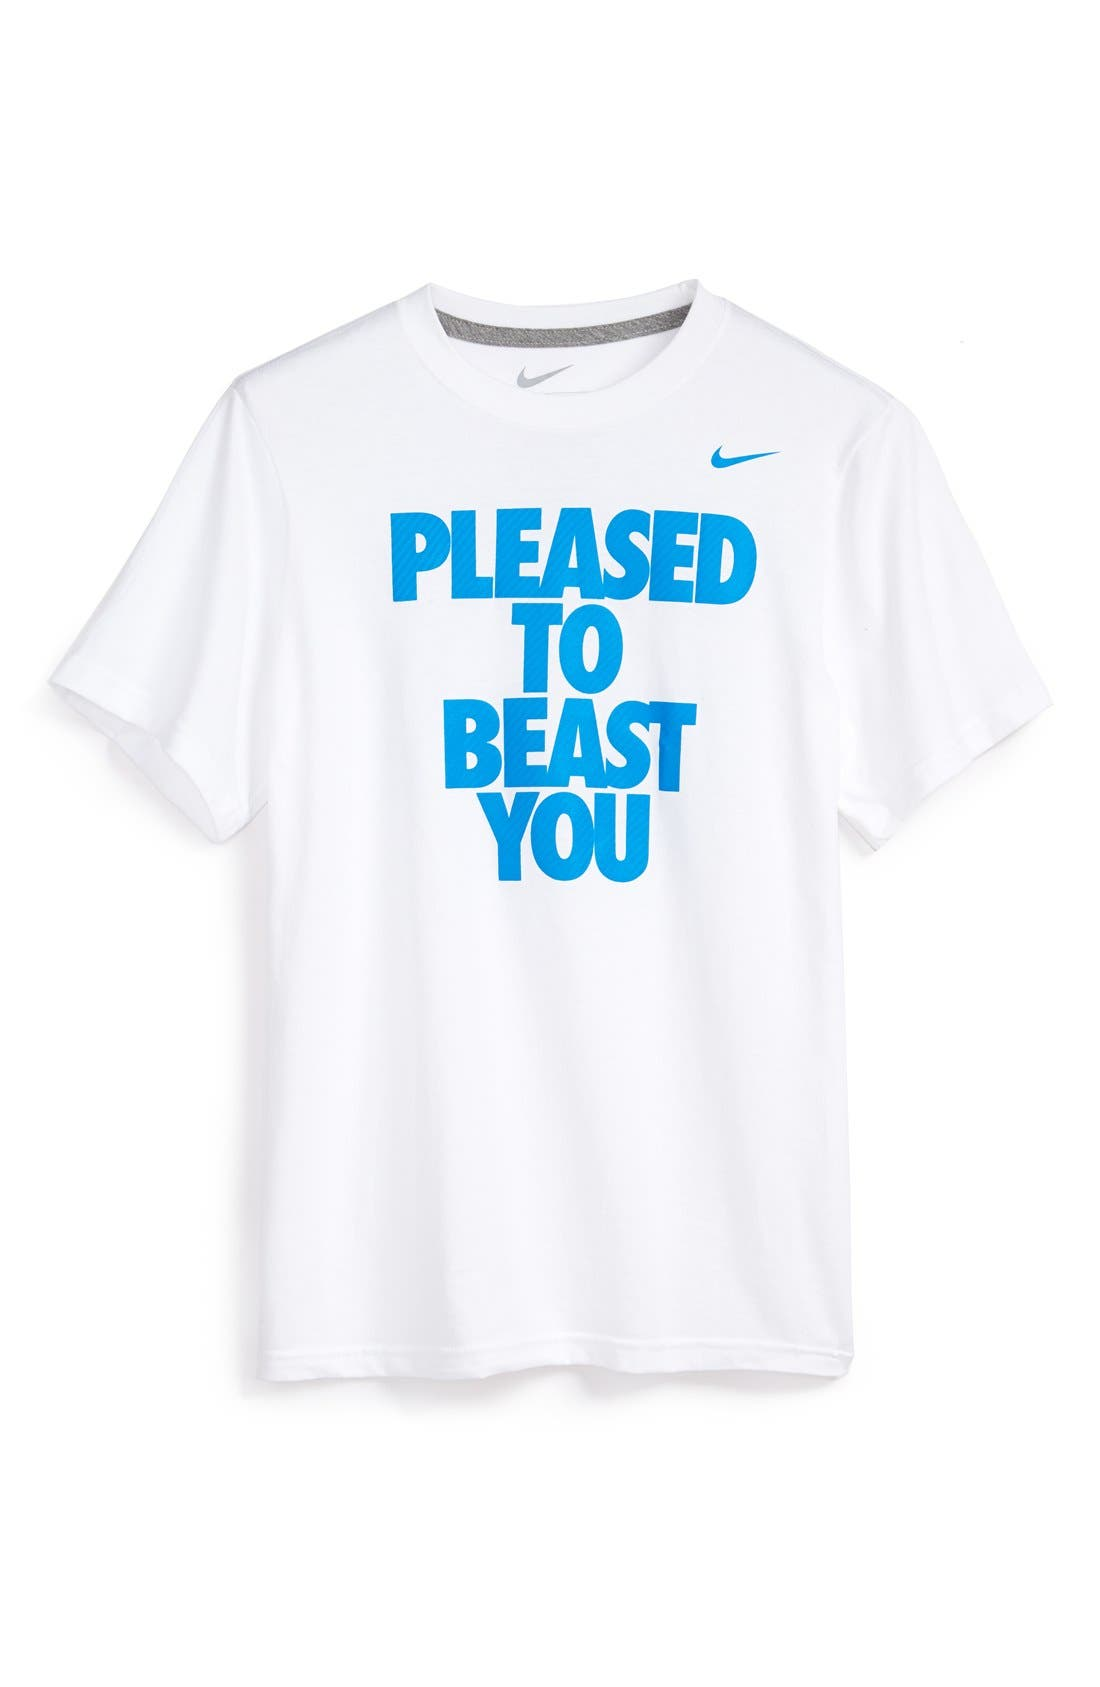 Alternate Image 1 Selected - Nike 'Pleased to Beast You' Short Sleeve Cotton T-Shirt (Big Boys)